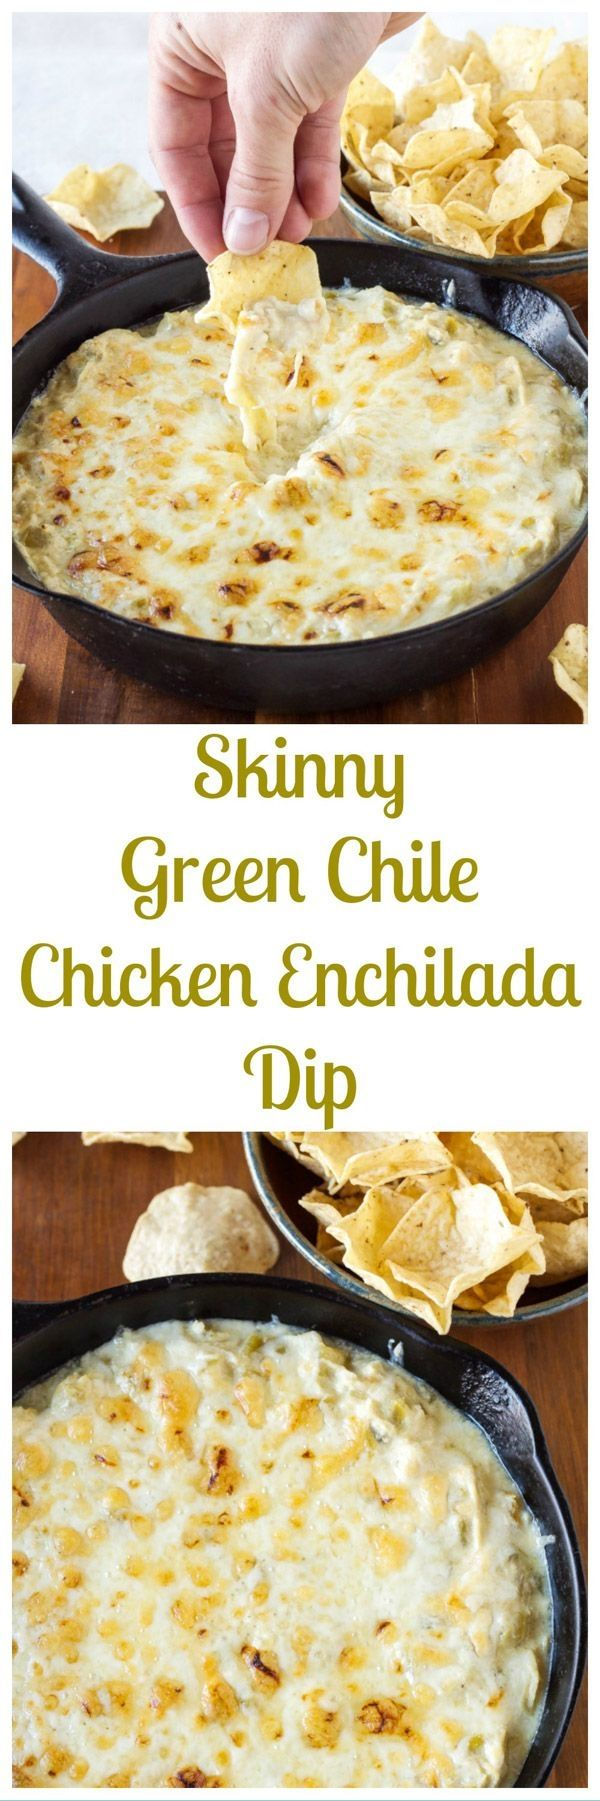 Skinny Green Chile Chicken Enchilada DipWarm, cheesy, green chile and enchilada dip with a fraction of the calories and fat compared to regular dip!